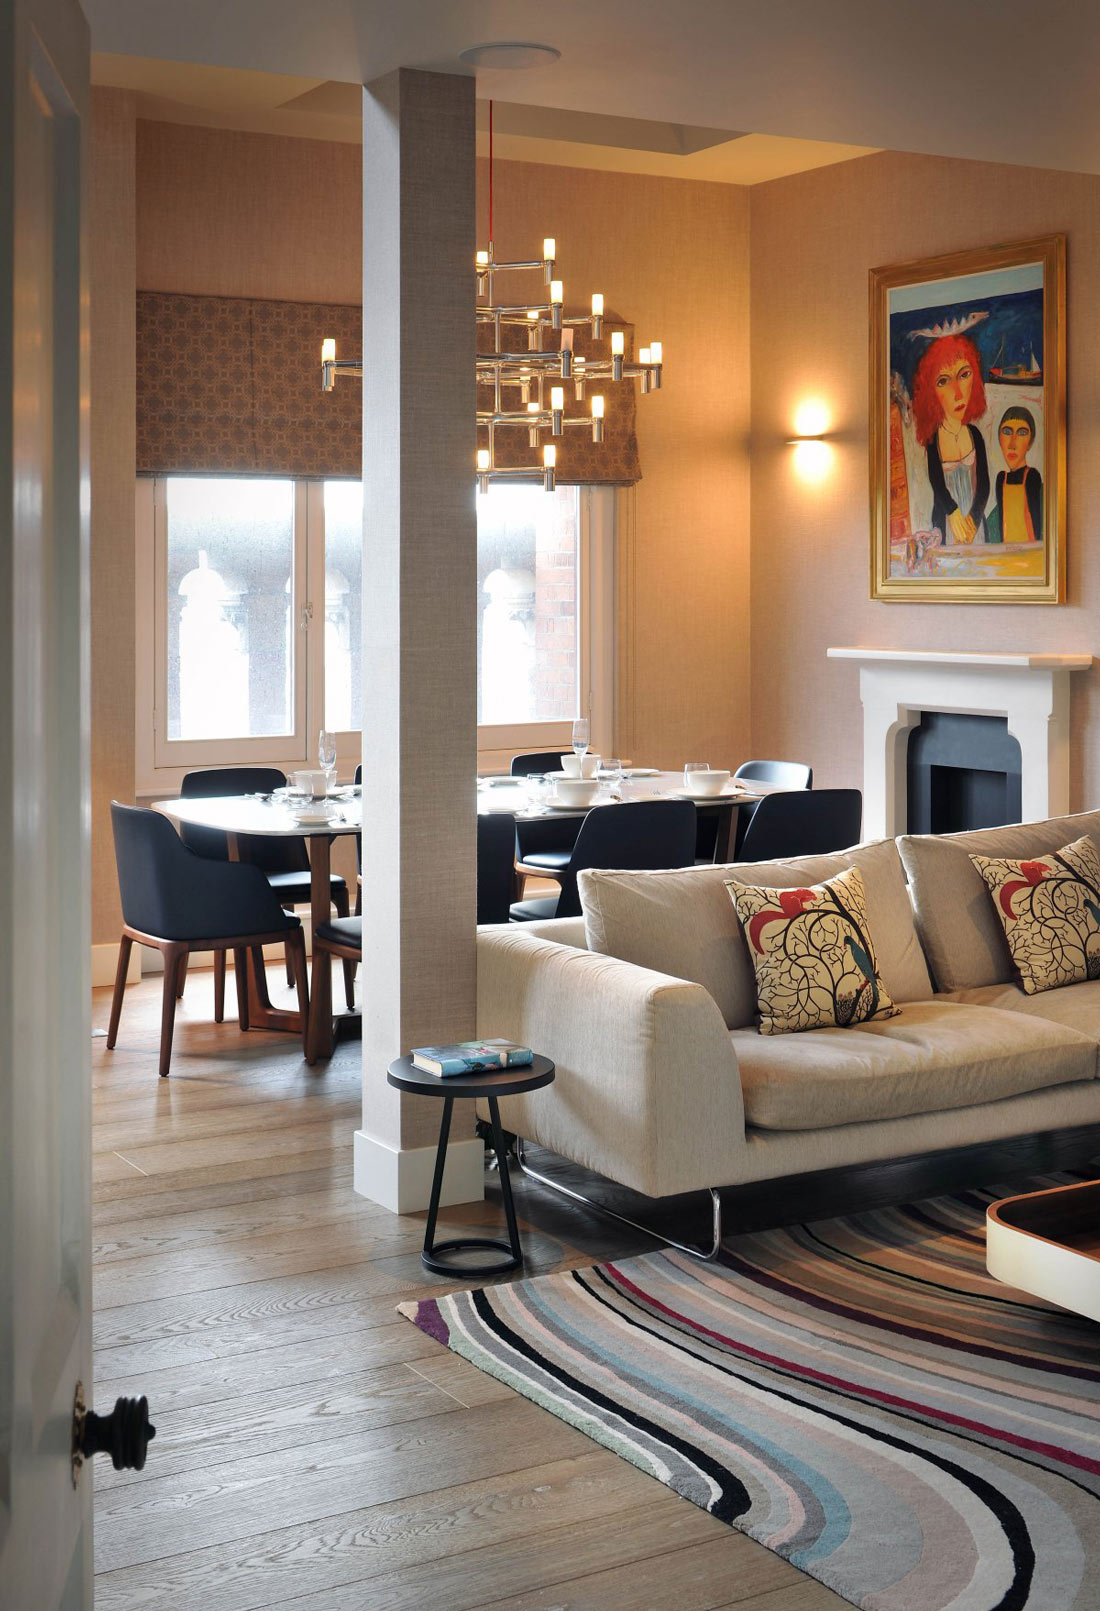 Sofa, Dining Table, Rug, Art, Lighting, St Pancras Penthouse Apartment in London